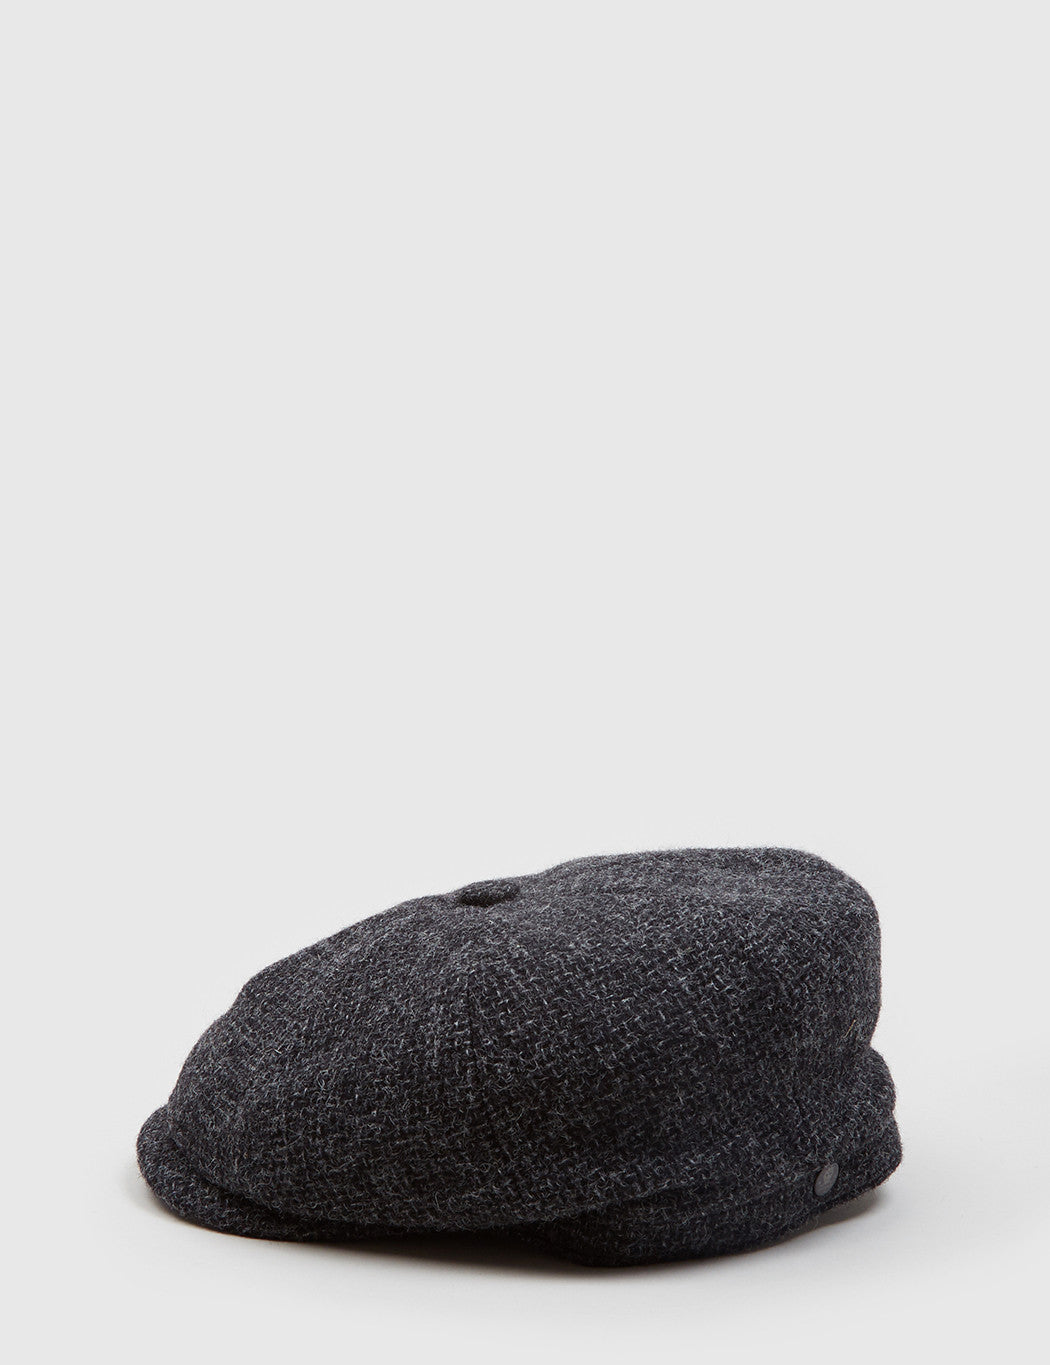 Stetson Hatteras Woven Newsboy Cap (Wool) - Charcoal Grey